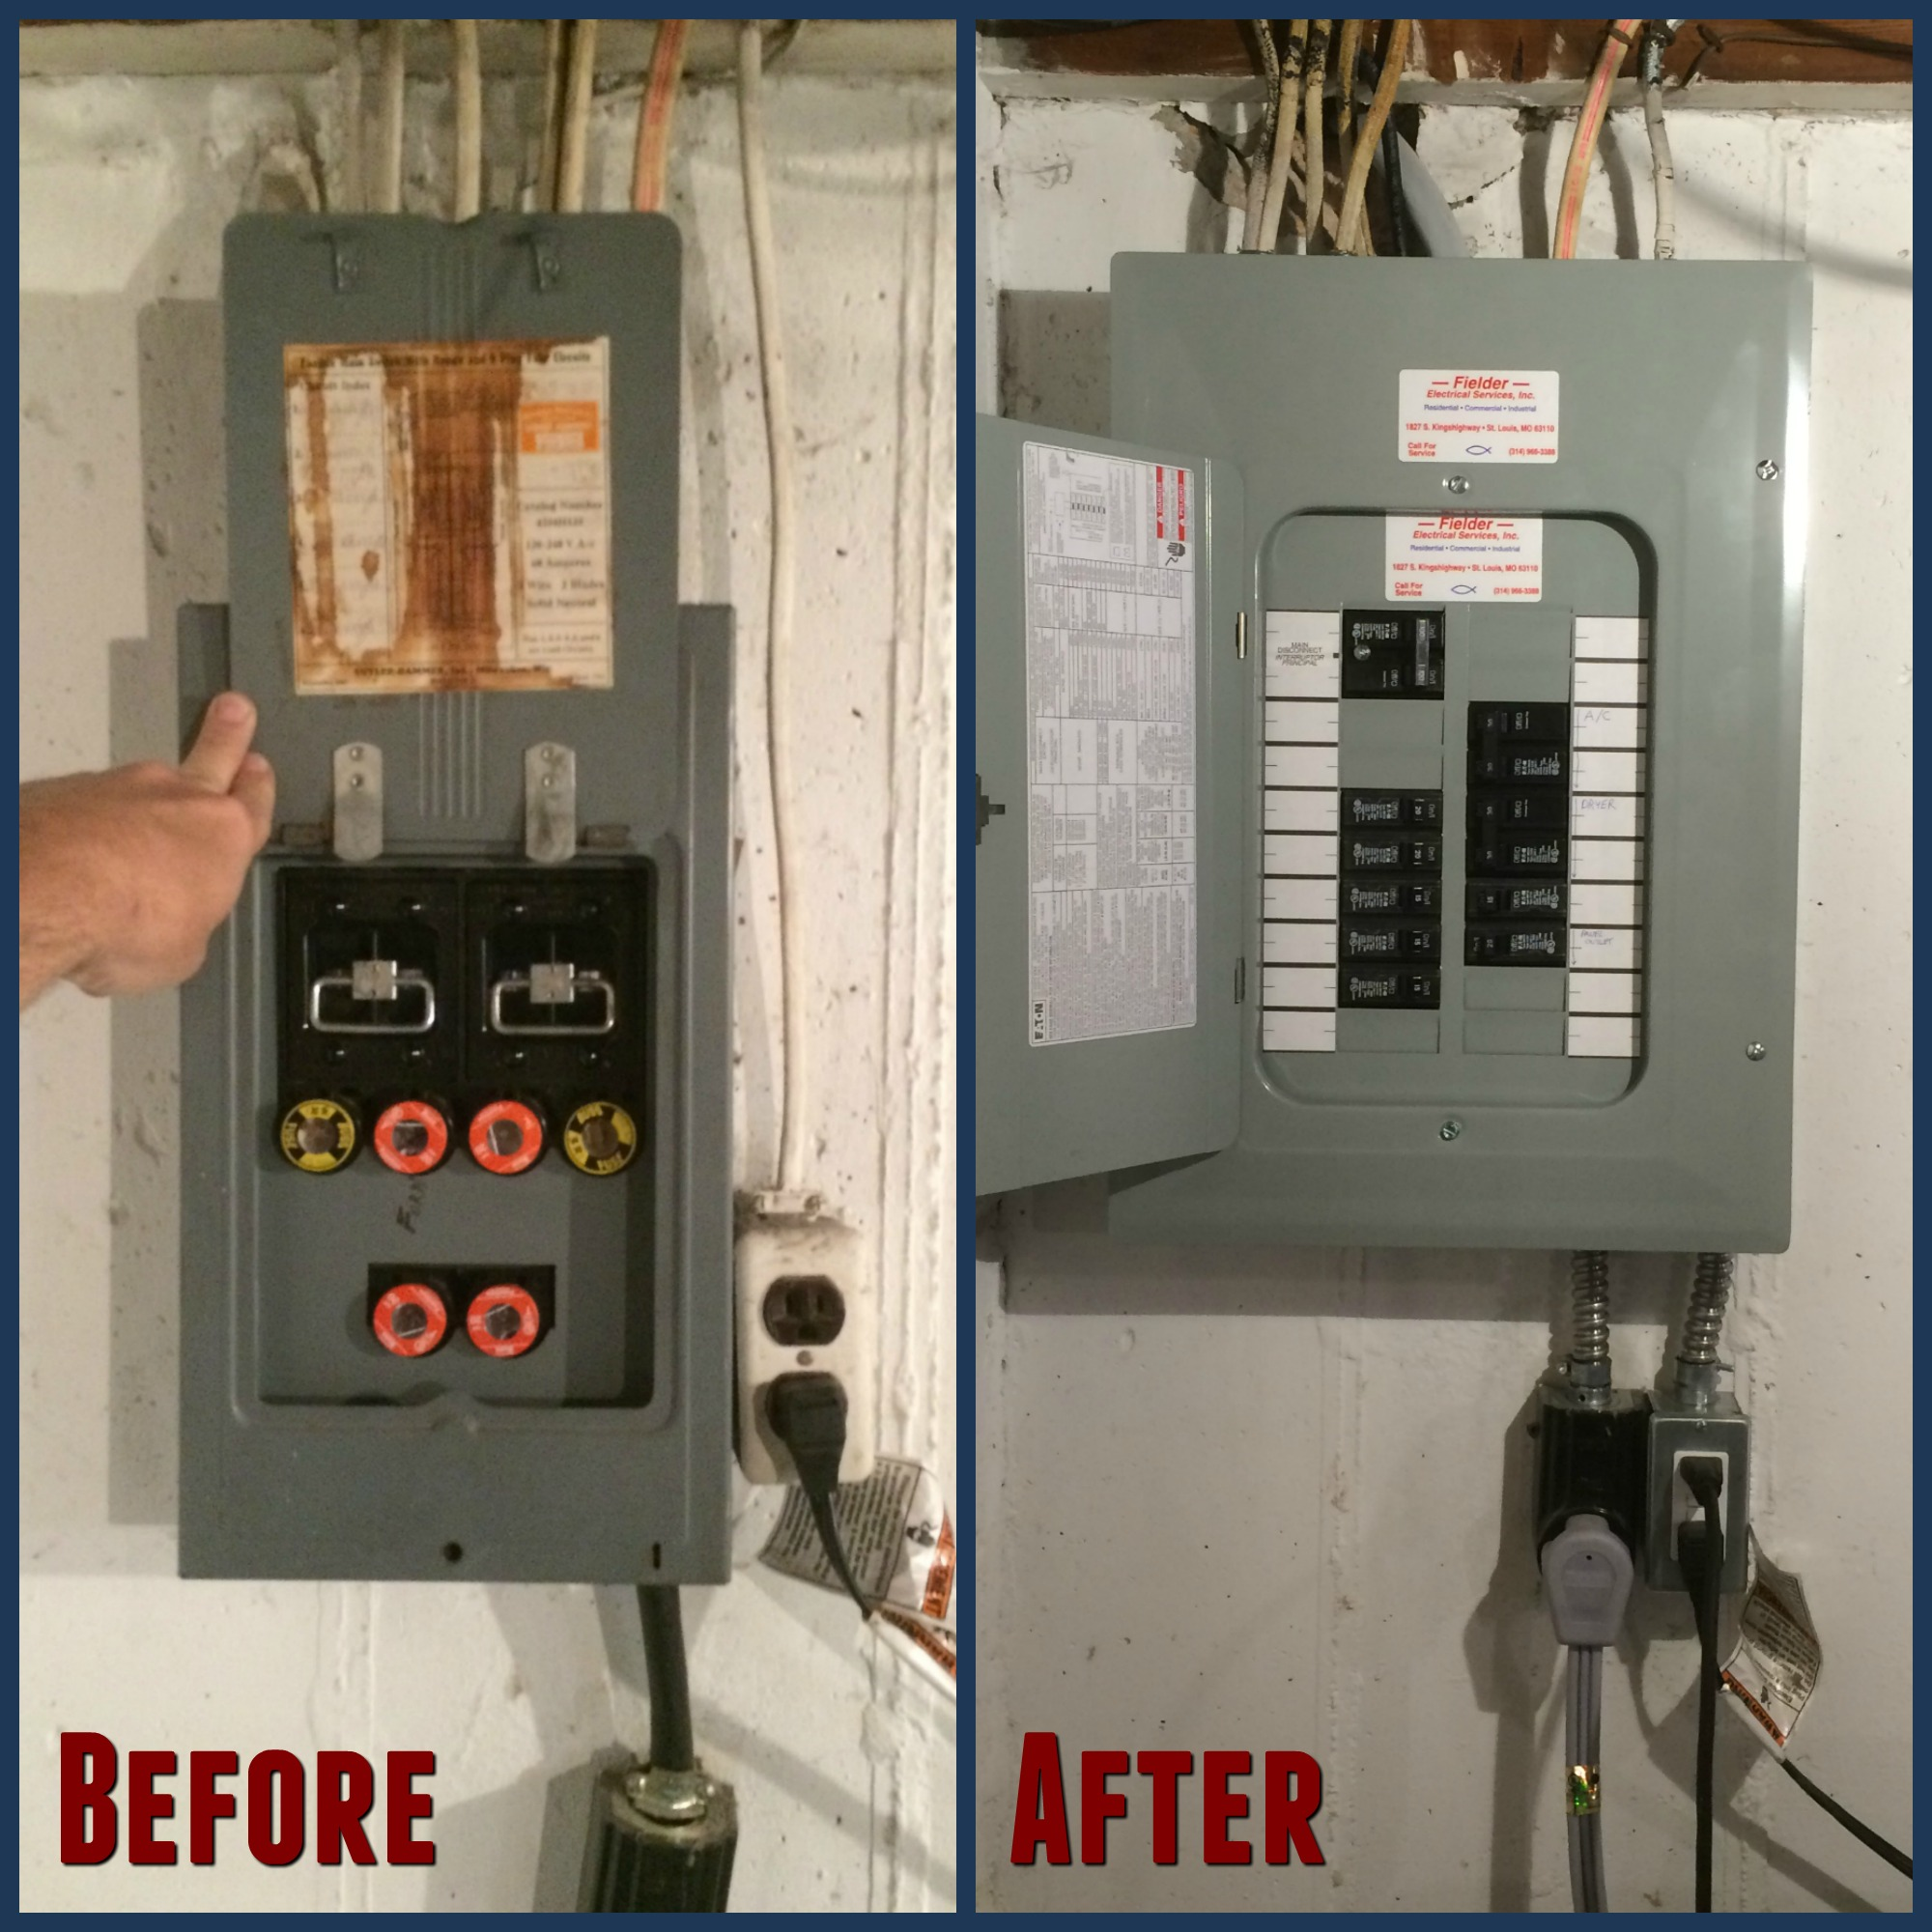 Fuse box replaced with electrical panel electrical panels fielder electrical services changing a fuse in a breaker box at et-consult.org